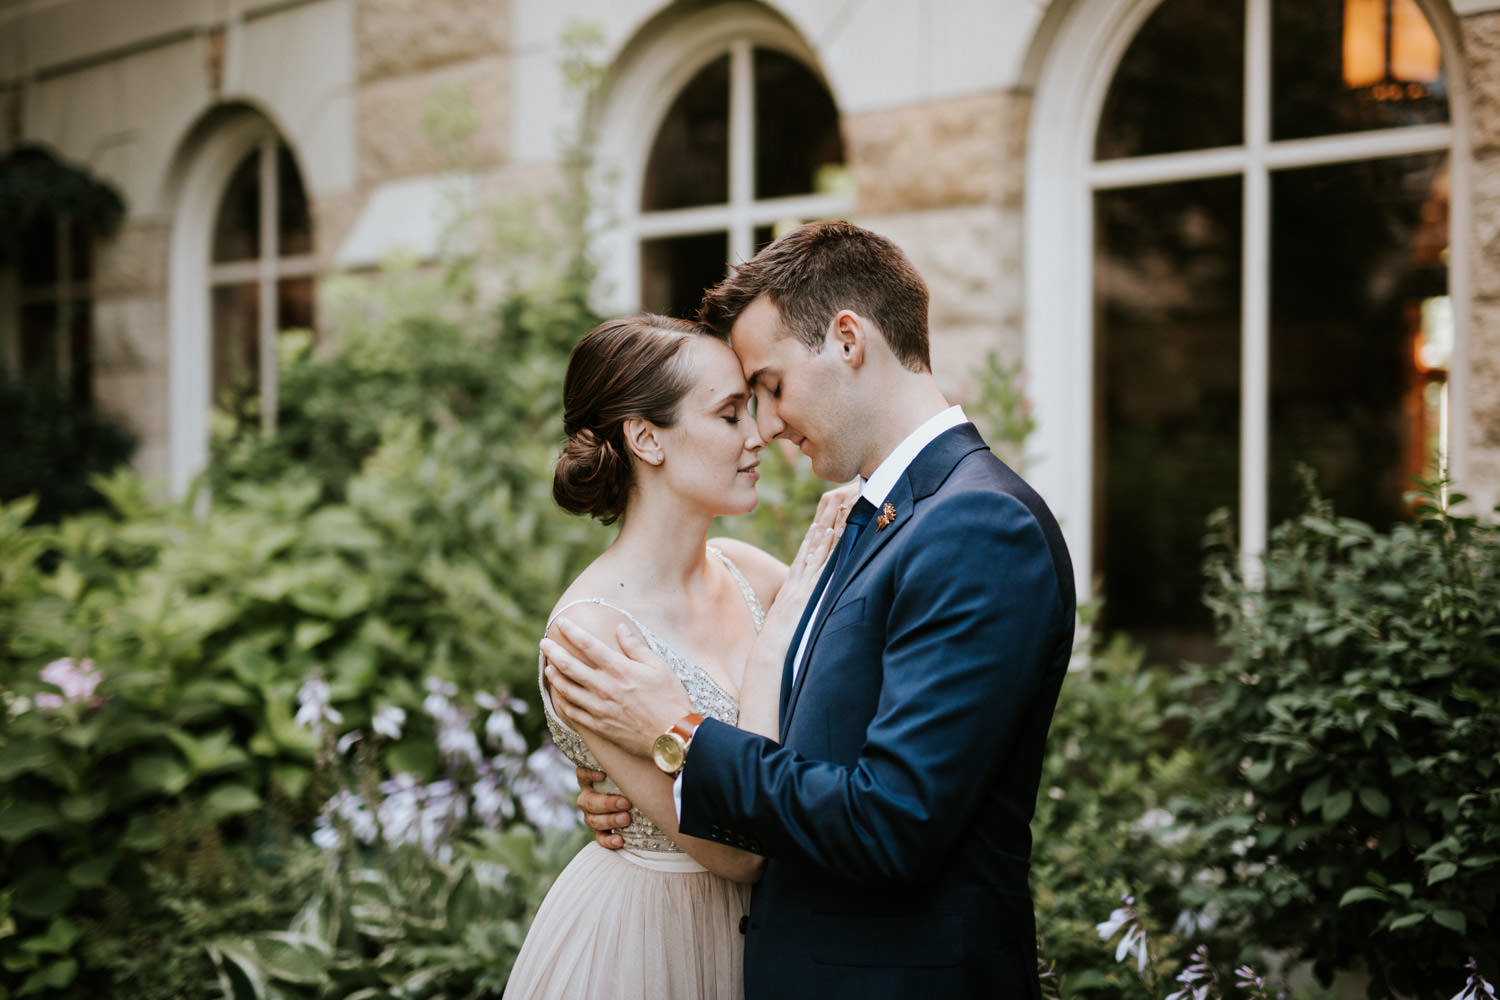 Quite moment between bride and groom captured by Mark Trela at Saint Ignatius College in Chicago